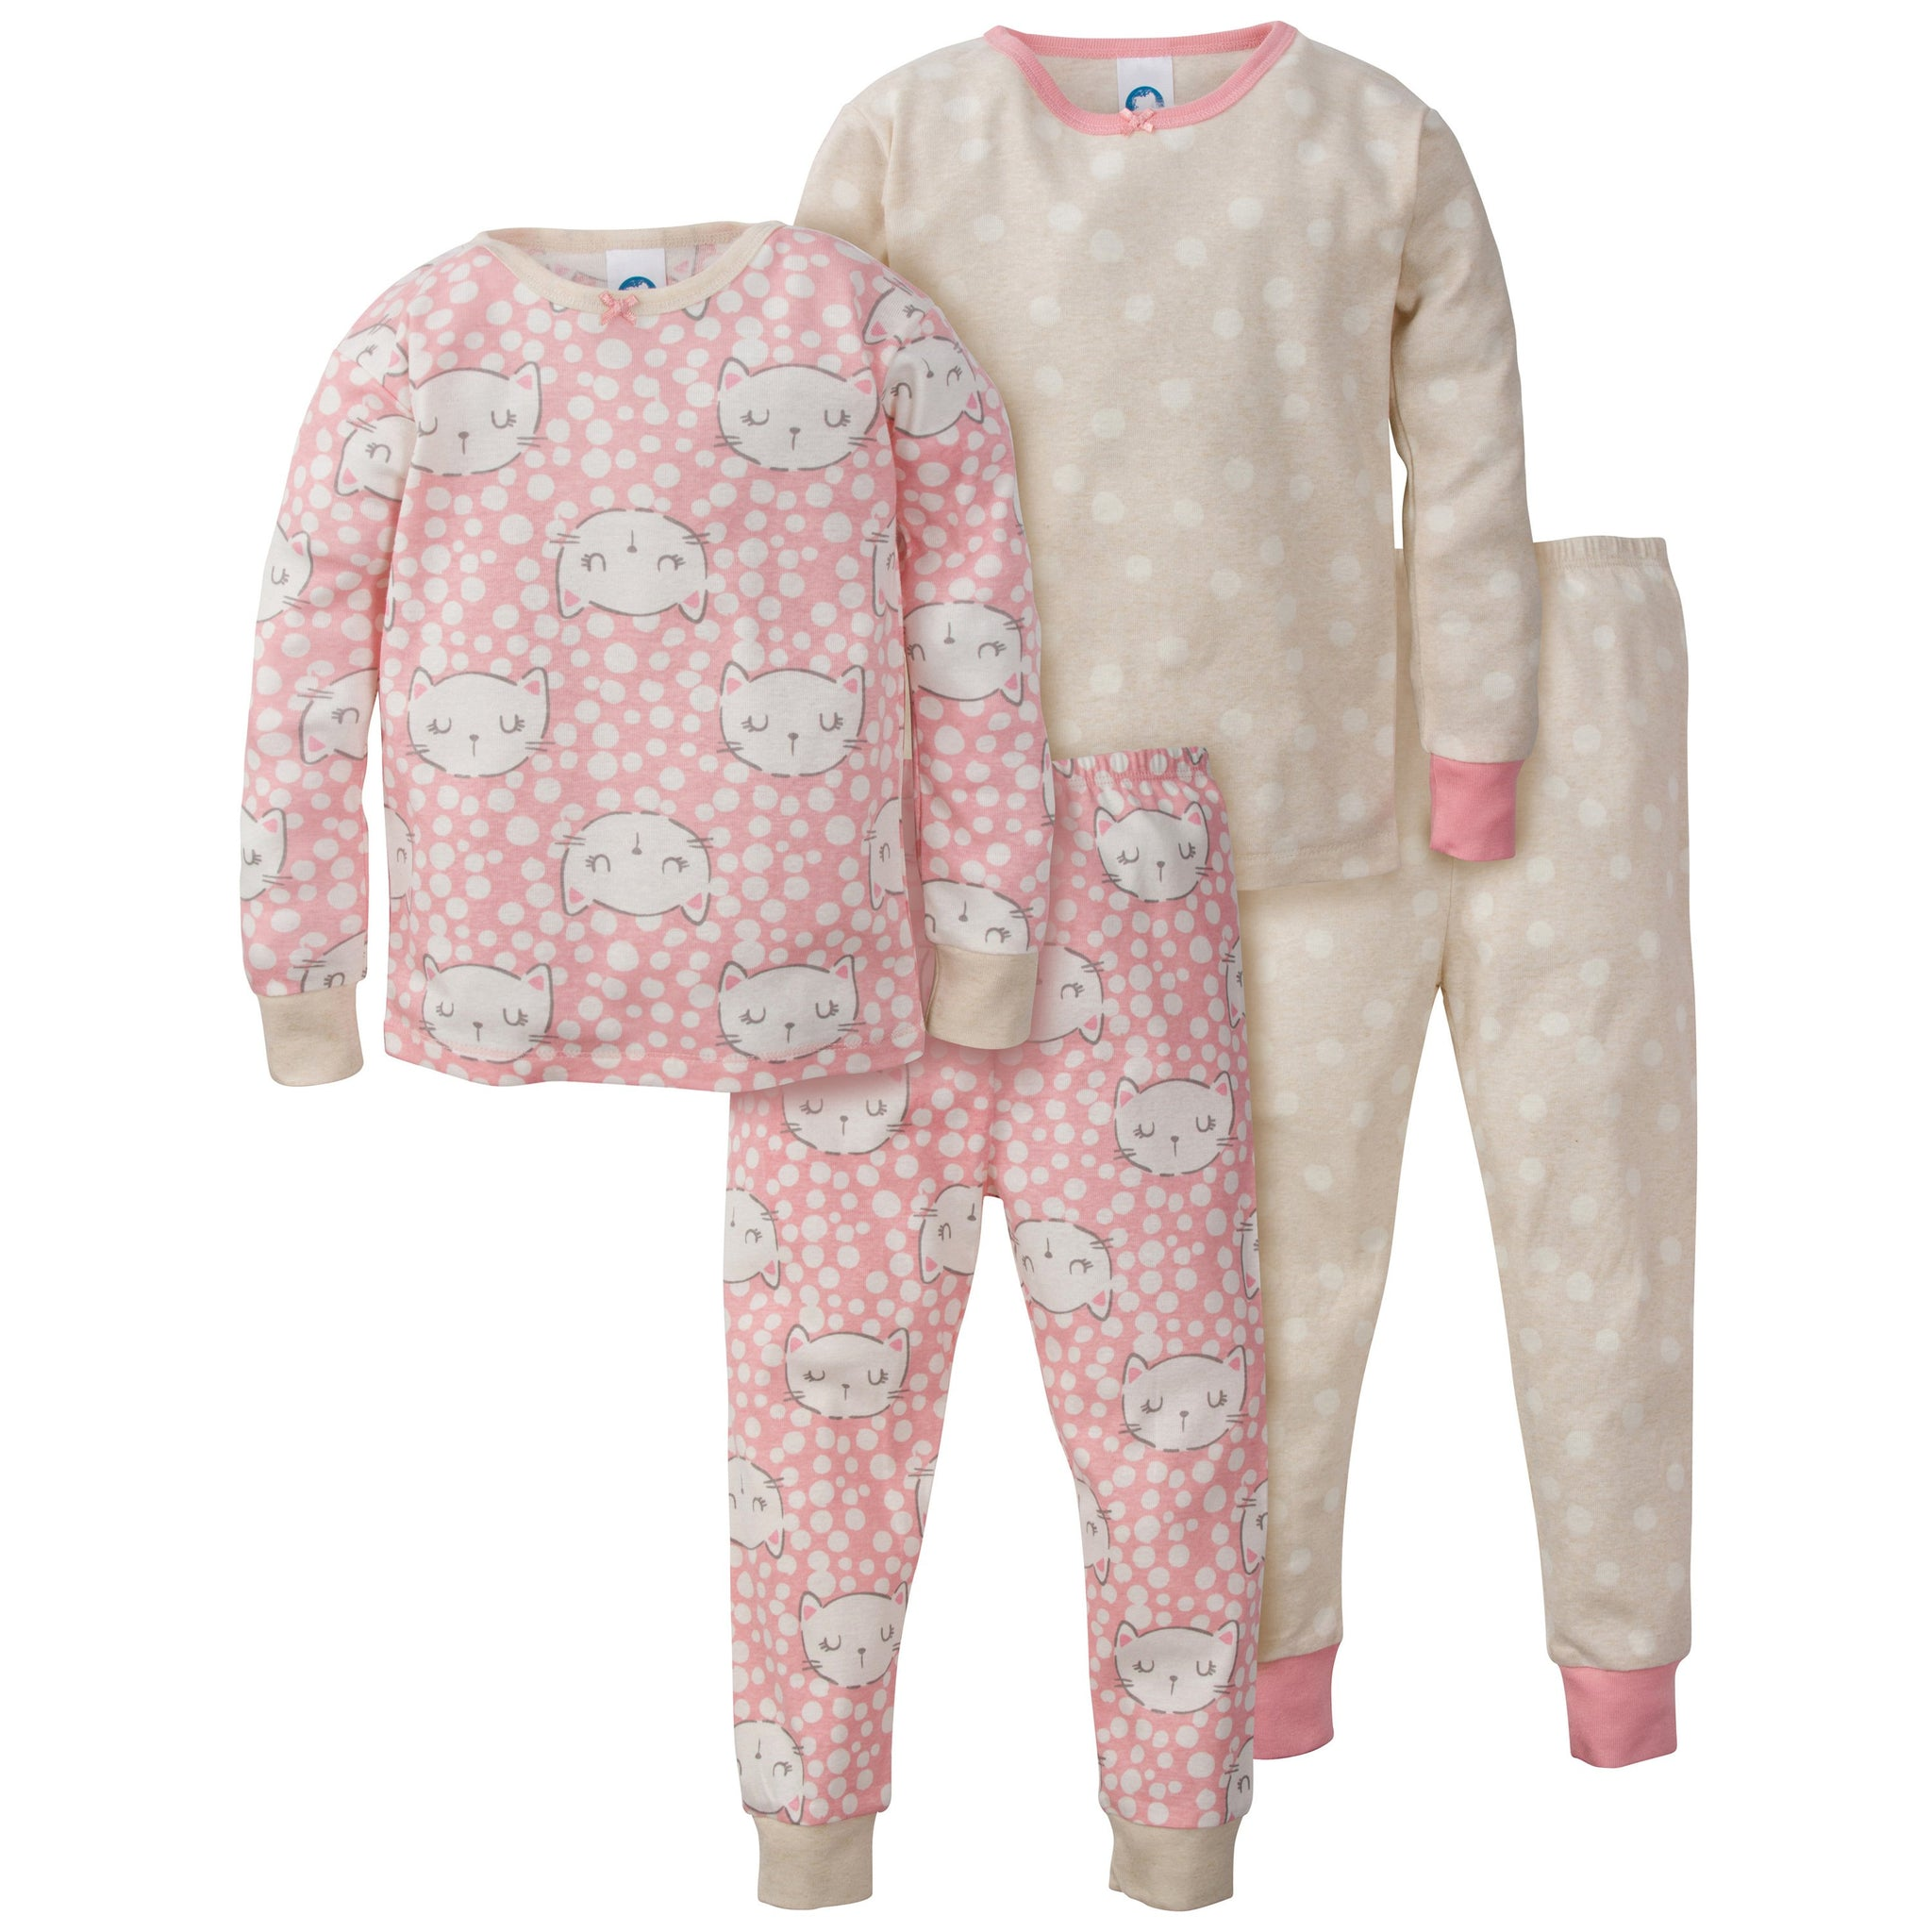 4-Piece Girls Organic Pajama Set - Kitty